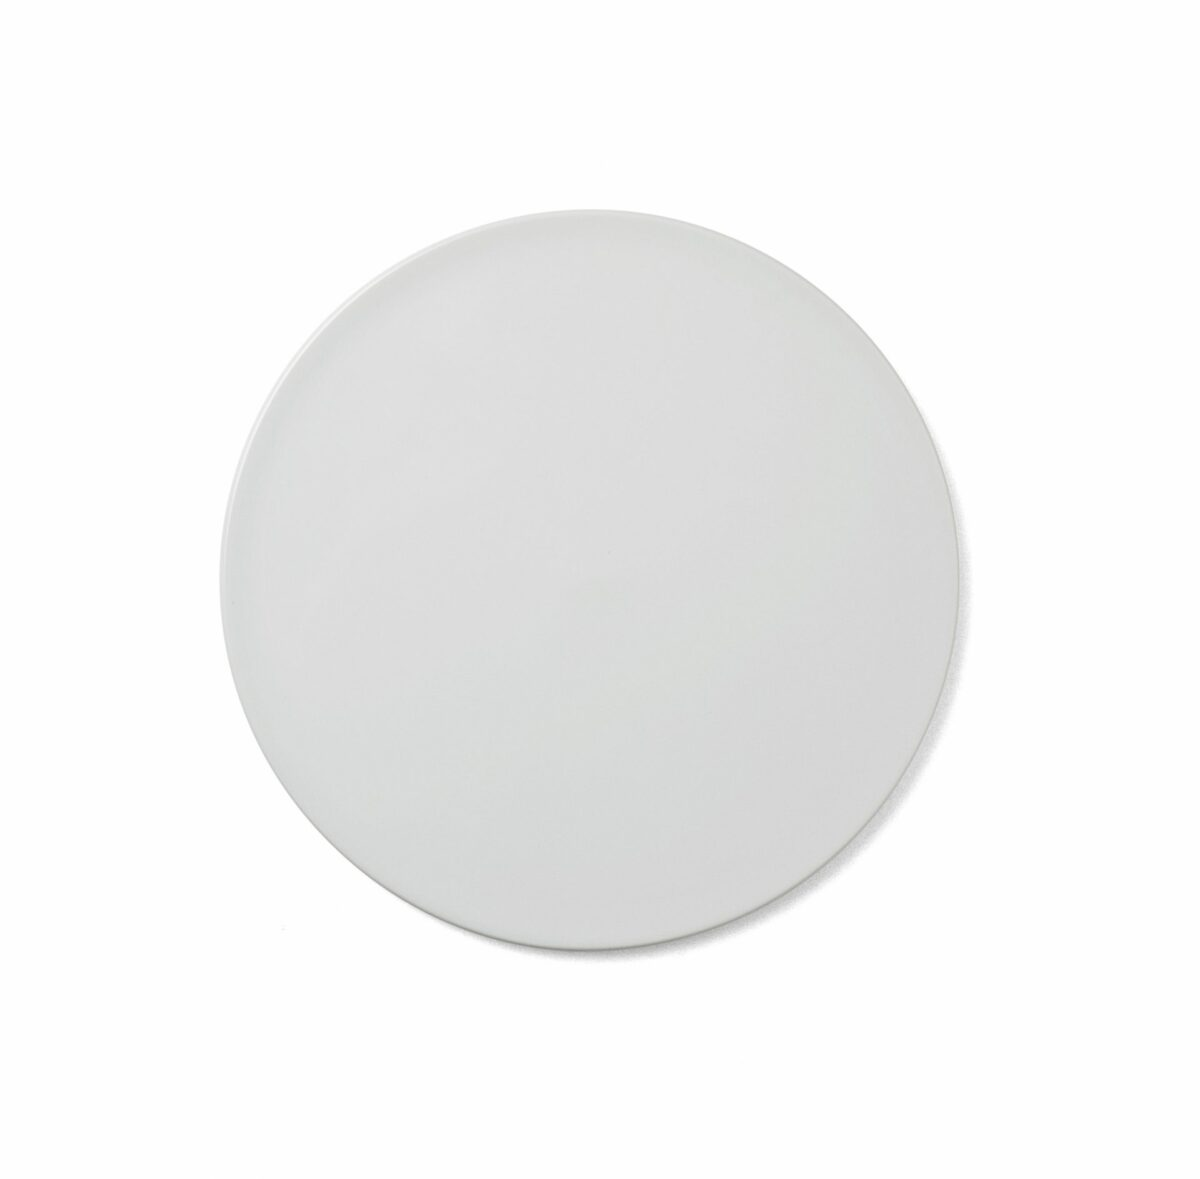 2013630 New Norm Plate lid O215 cm White Norm 02